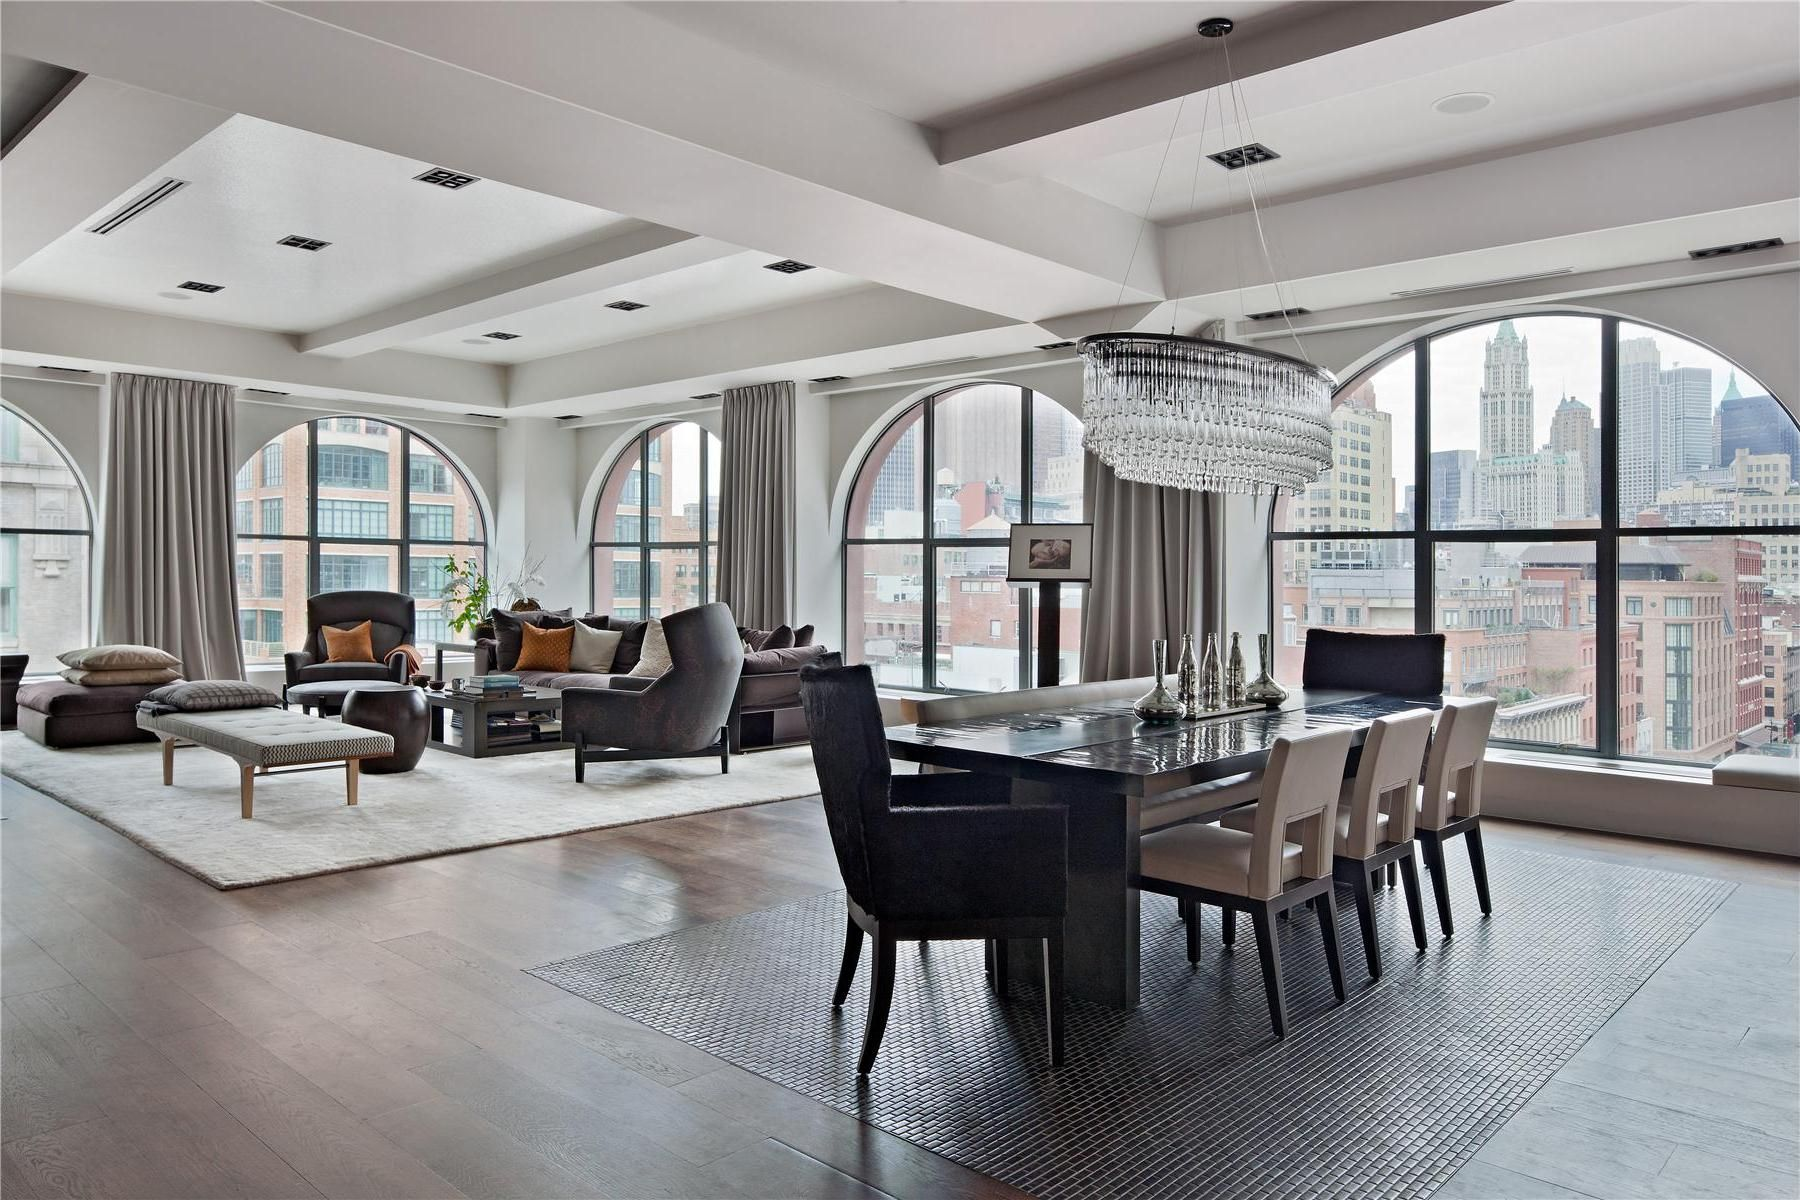 Awesome Image Of Luxury Loft Apartment Modern Spectacular 408 Greenwich Street In Tribeca New York